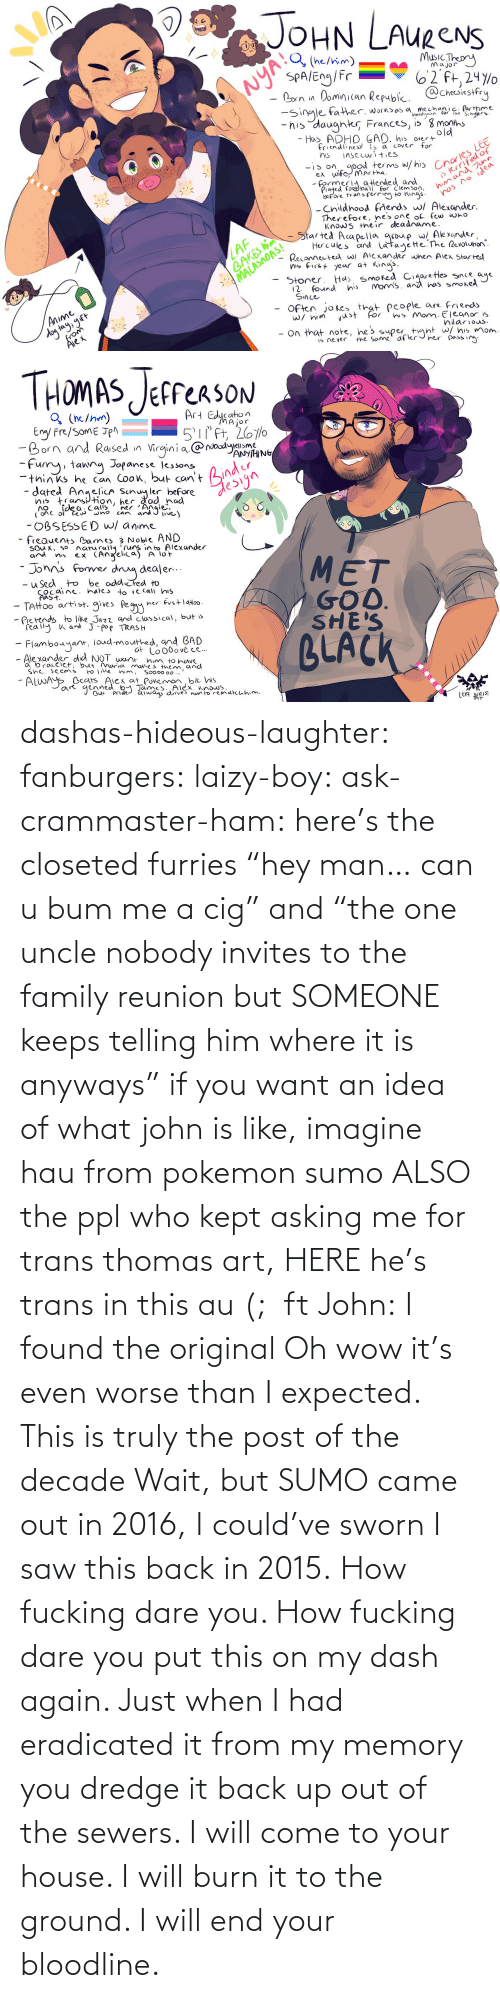 "ham: dashas-hideous-laughter:  fanburgers:   laizy-boy:   ask-crammaster-ham:   here's the closeted furries ""hey man… can u bum me a cig"" and ""the one uncle nobody invites to the family reunion but SOMEONE keeps telling him where it is anyways""   if you want an idea of what john is like, imagine hau from pokemon sumo ALSO the ppl who kept asking me for trans thomas art, HERE he's trans in this au (;  ft John:    I found the original     Oh wow it's even worse than I expected. This is truly the post of the decade    Wait, but SUMO came out in 2016, I could've sworn I saw this back in 2015.    How fucking dare you. How fucking dare you put this on my dash again. Just when I had eradicated it from my memory you dredge it back up out of the sewers. I will come to your house. I will burn it to the ground. I will end your bloodline."